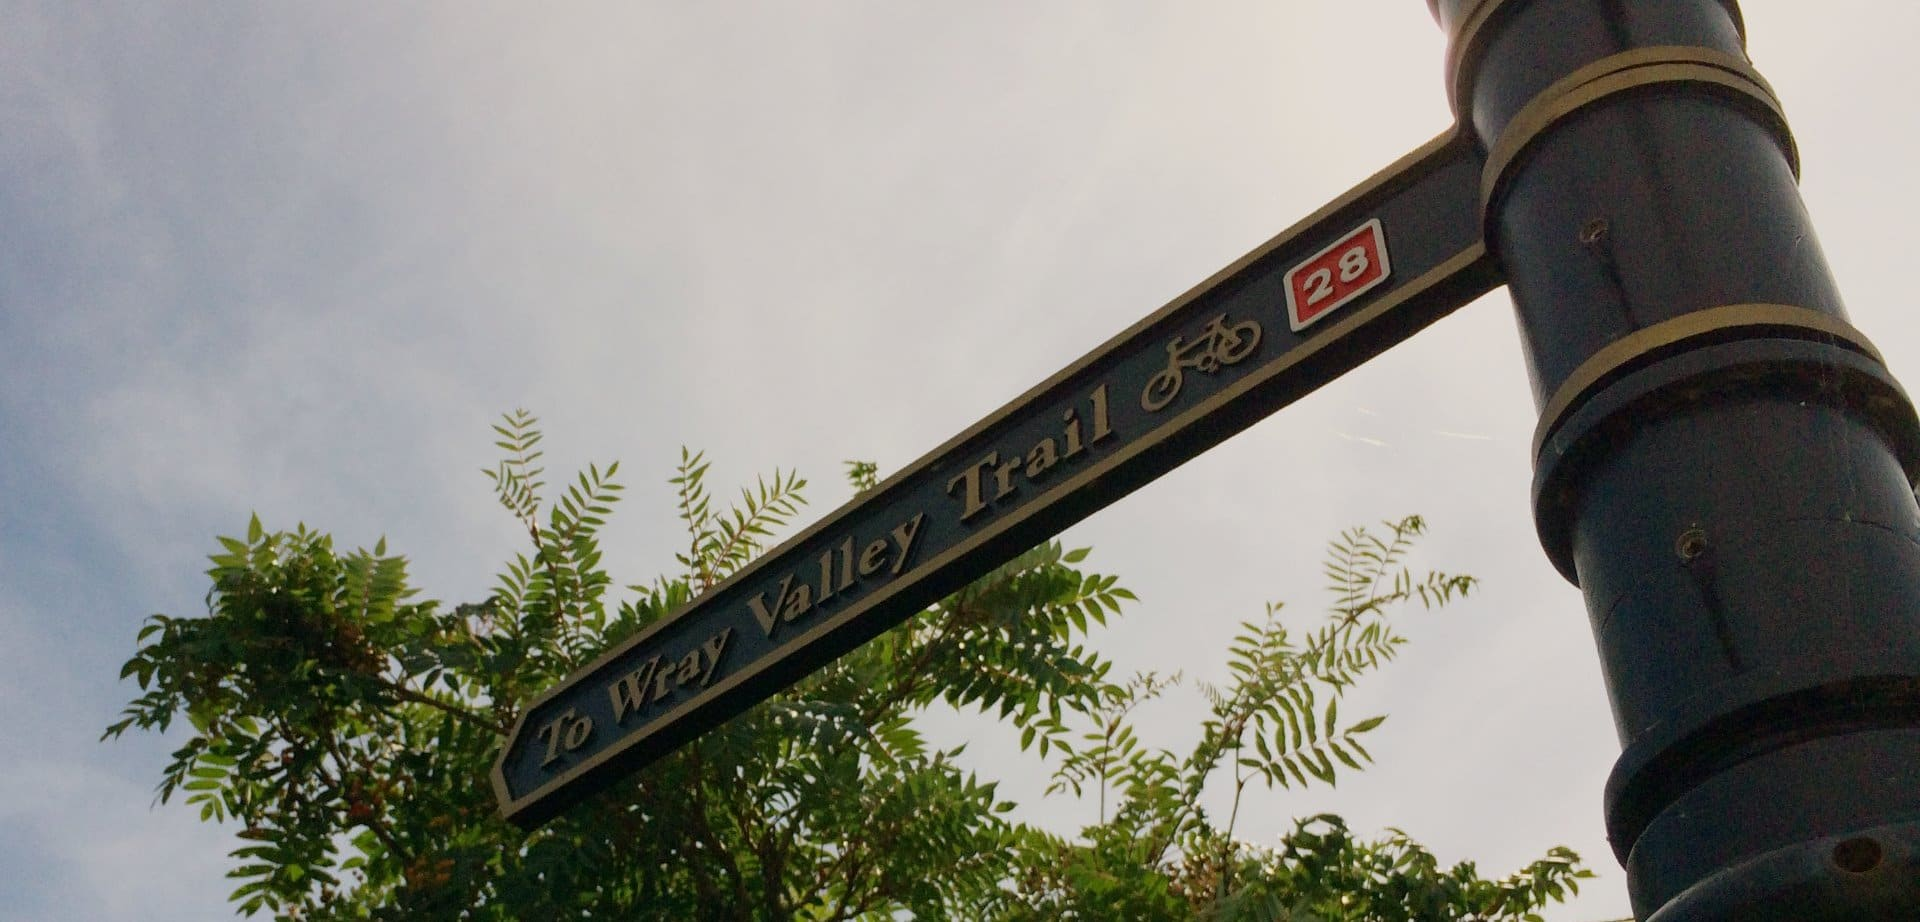 Photo of the Wray Valley Trail waymarking post